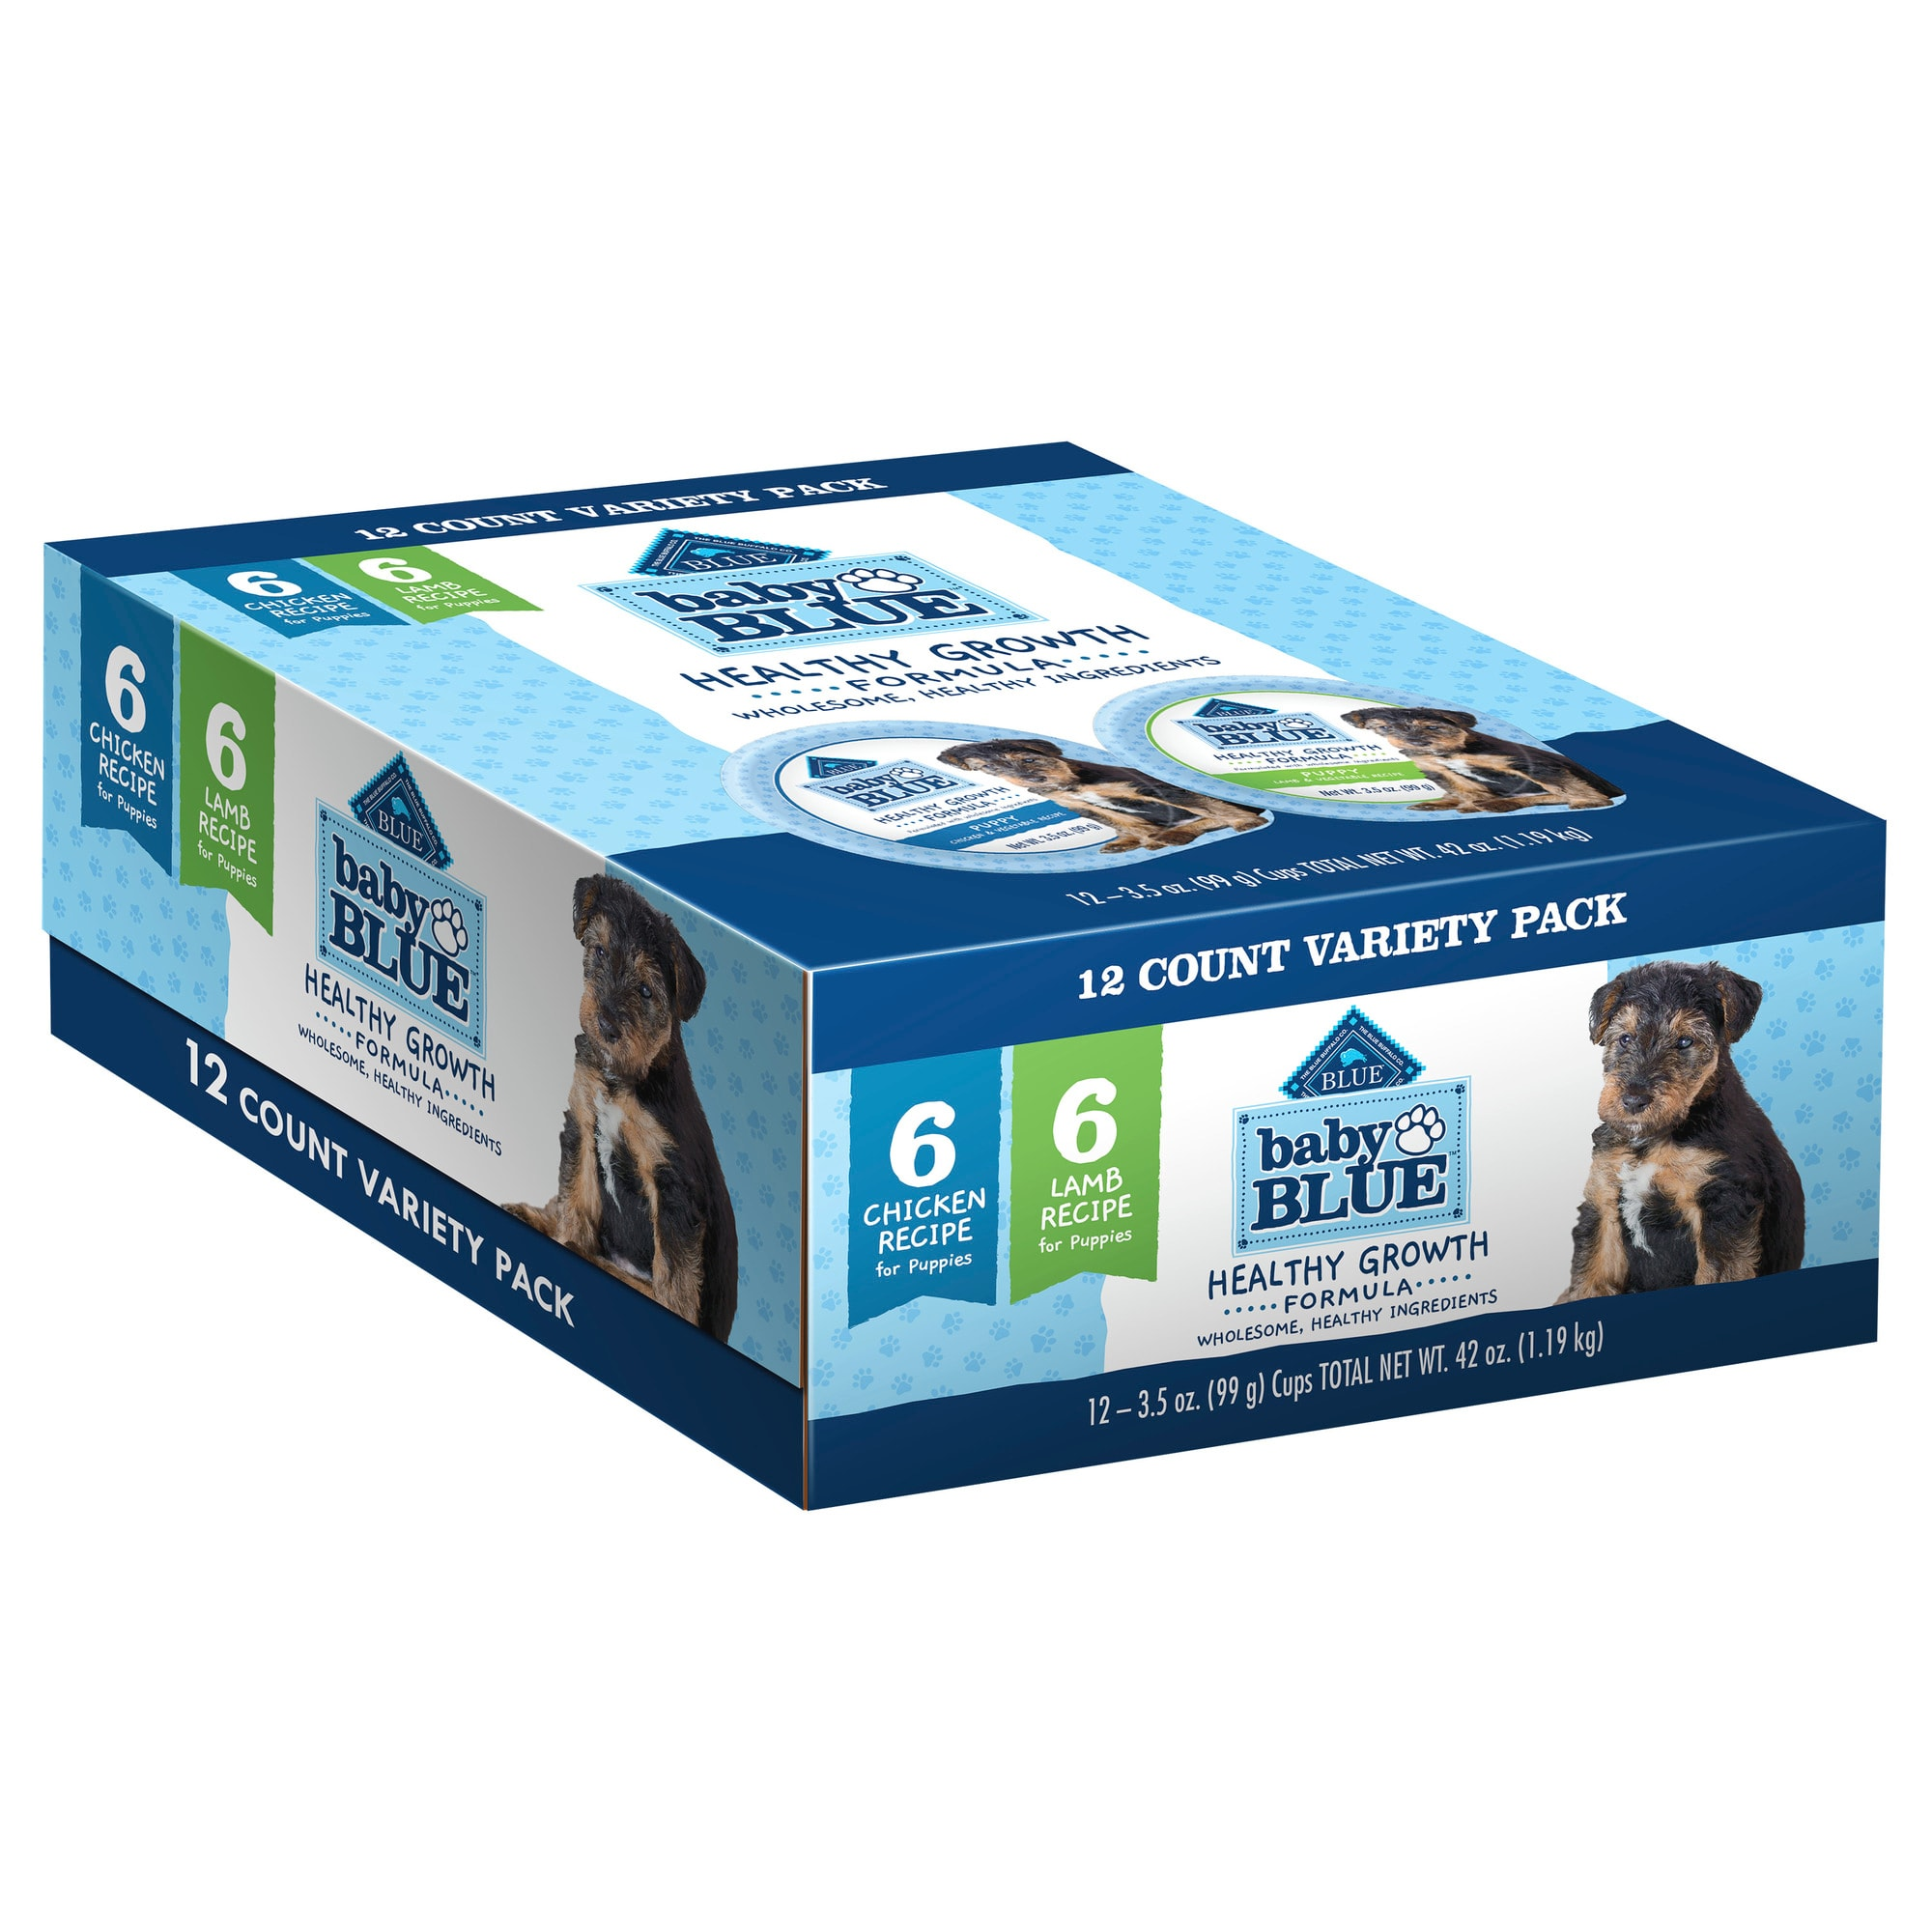 Every pet parent wants what\\\'s best for their baby. That\\\'s why Baby BLUE single-serve cups for puppies feature high-quality, natural ingredients enhanced with vitamins, minerals and other nutrients to get your new furry friend started on the right paw. Starting with real chicken, plus brown rice, fruits and vegetables, this wet dog food features the ingredients that you can trust to keep your puppy powered with the wholesome nutrition needed for healthy growth and play.